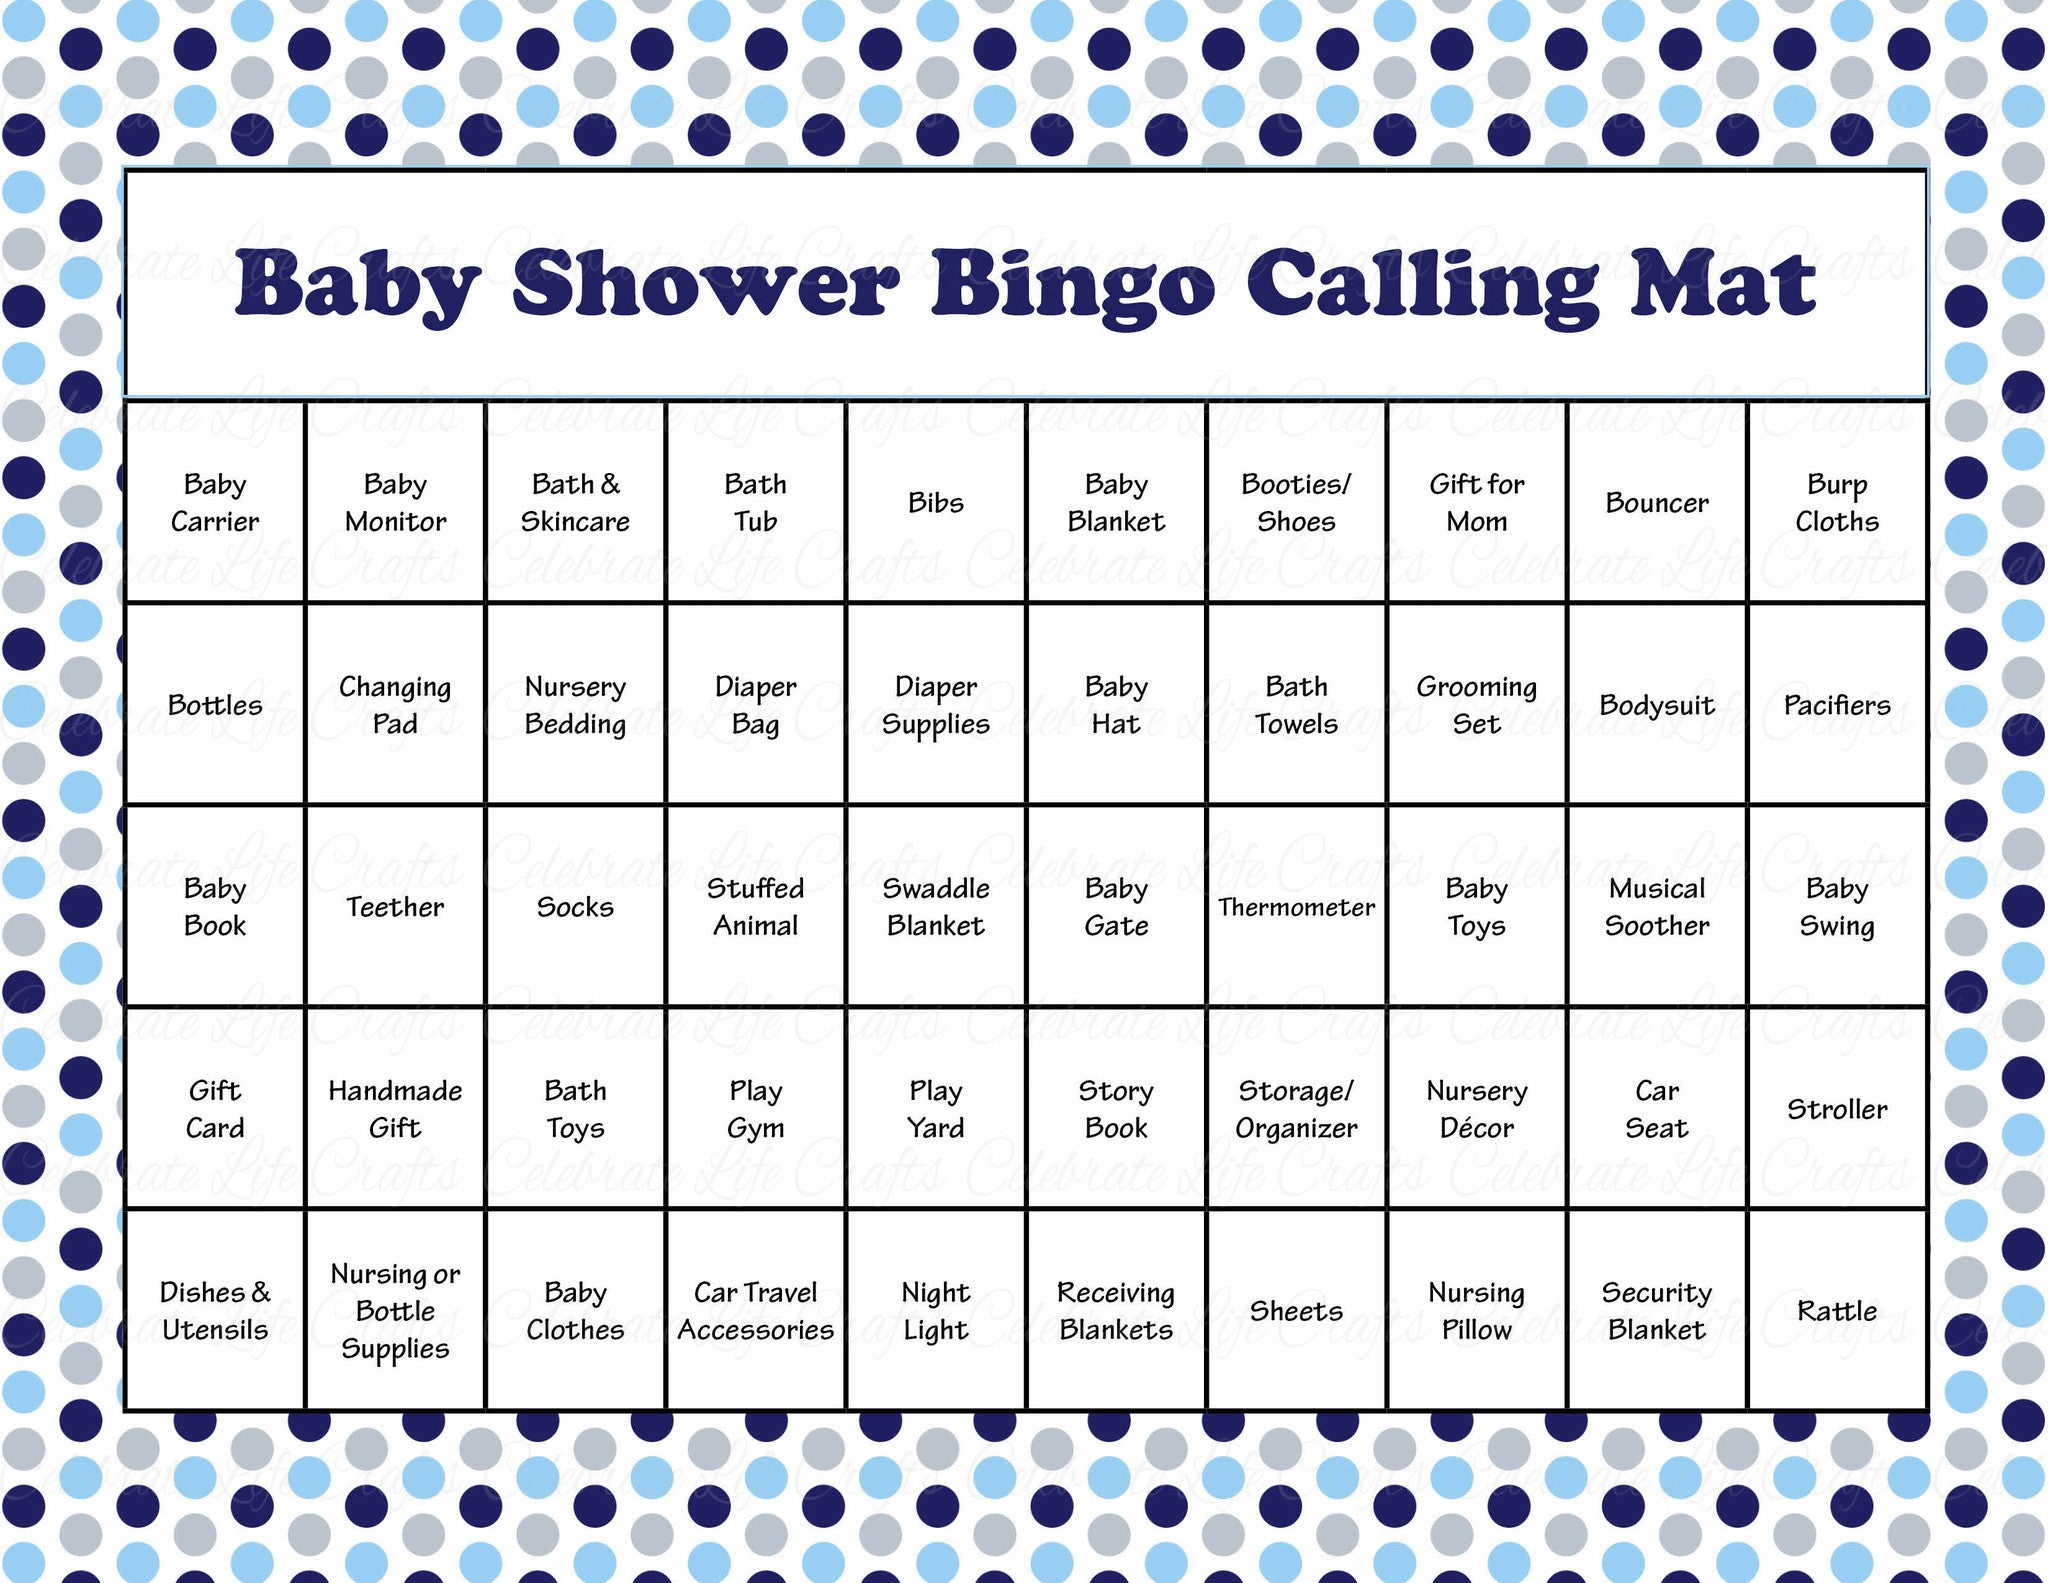 picture about Printable Bingo Calling Cards named Whale Kid Shower Recreation Obtain for Boy Child Bingo